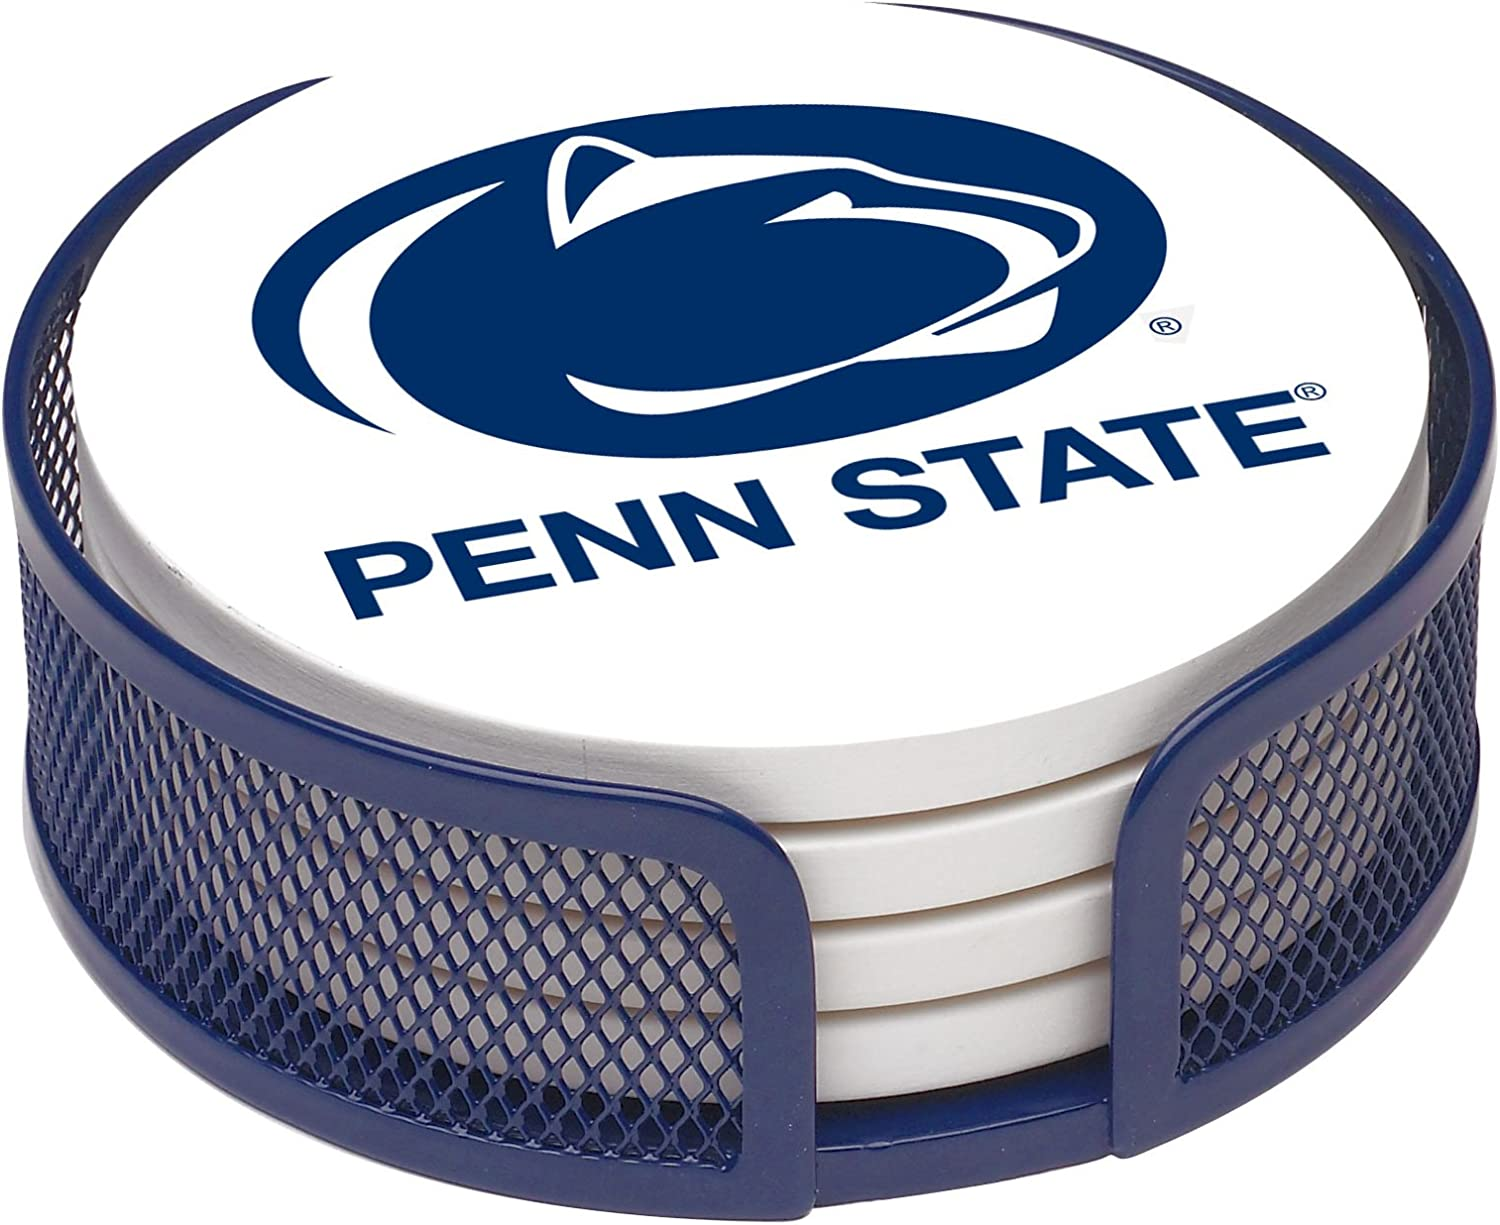 Thirstystone Stoneware Drink Coaster Set with Holder, Penn State University